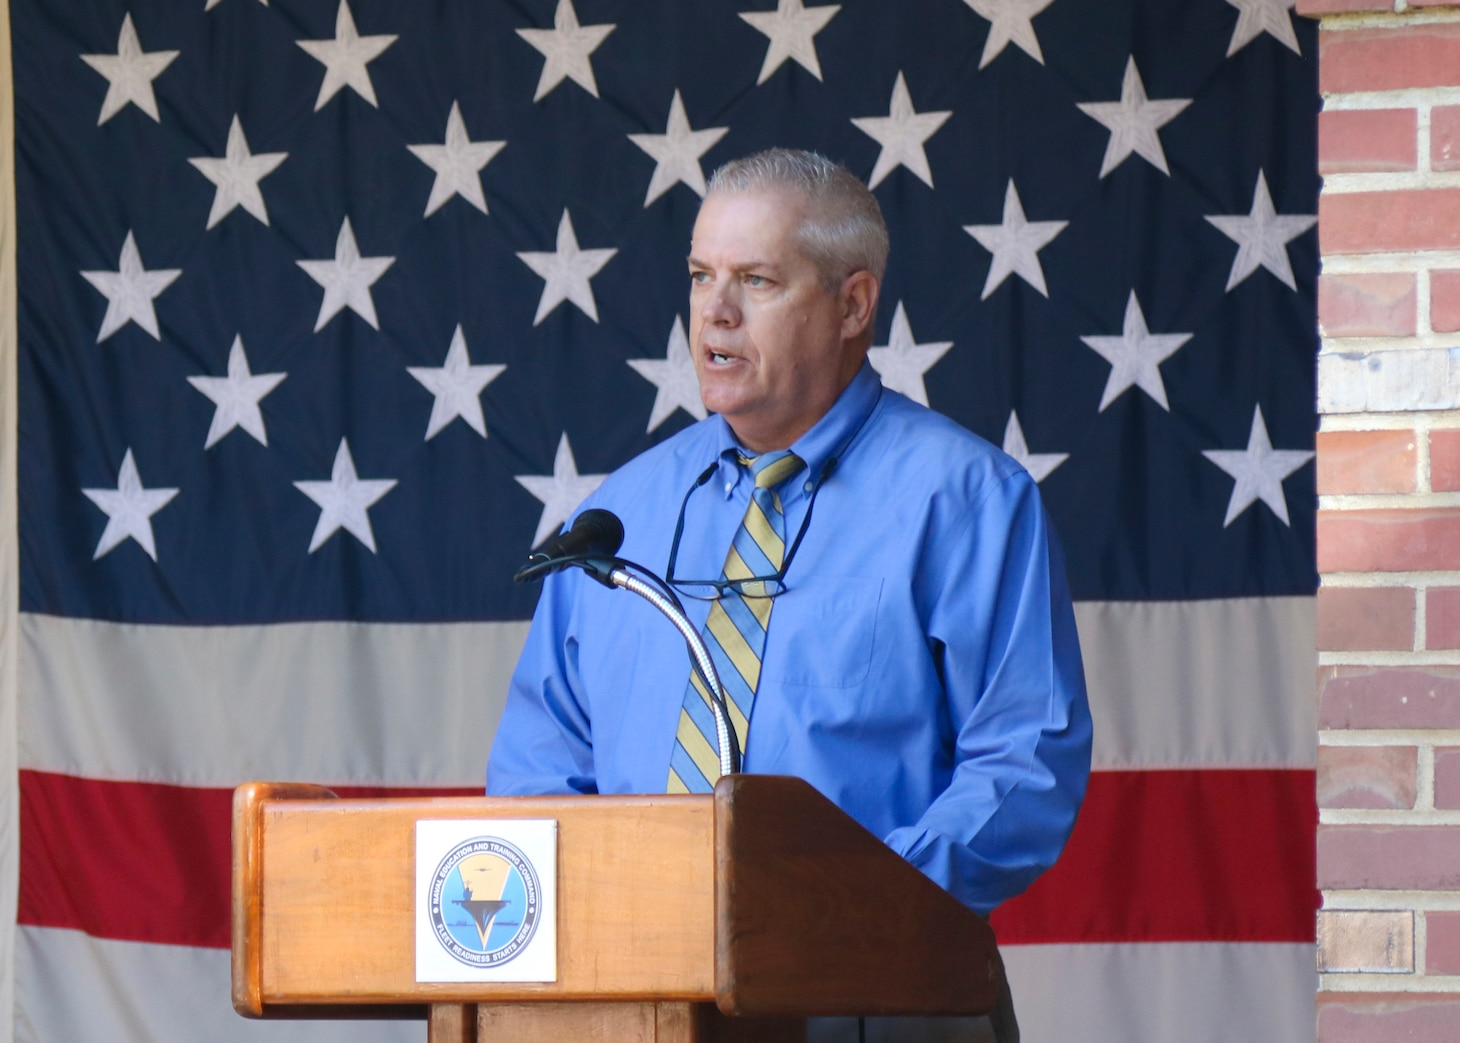 Wayne Killingsworth, cyber security program manager at Naval Education and Training Command (NETC), speaks during a 9/11 memorial ceremony.